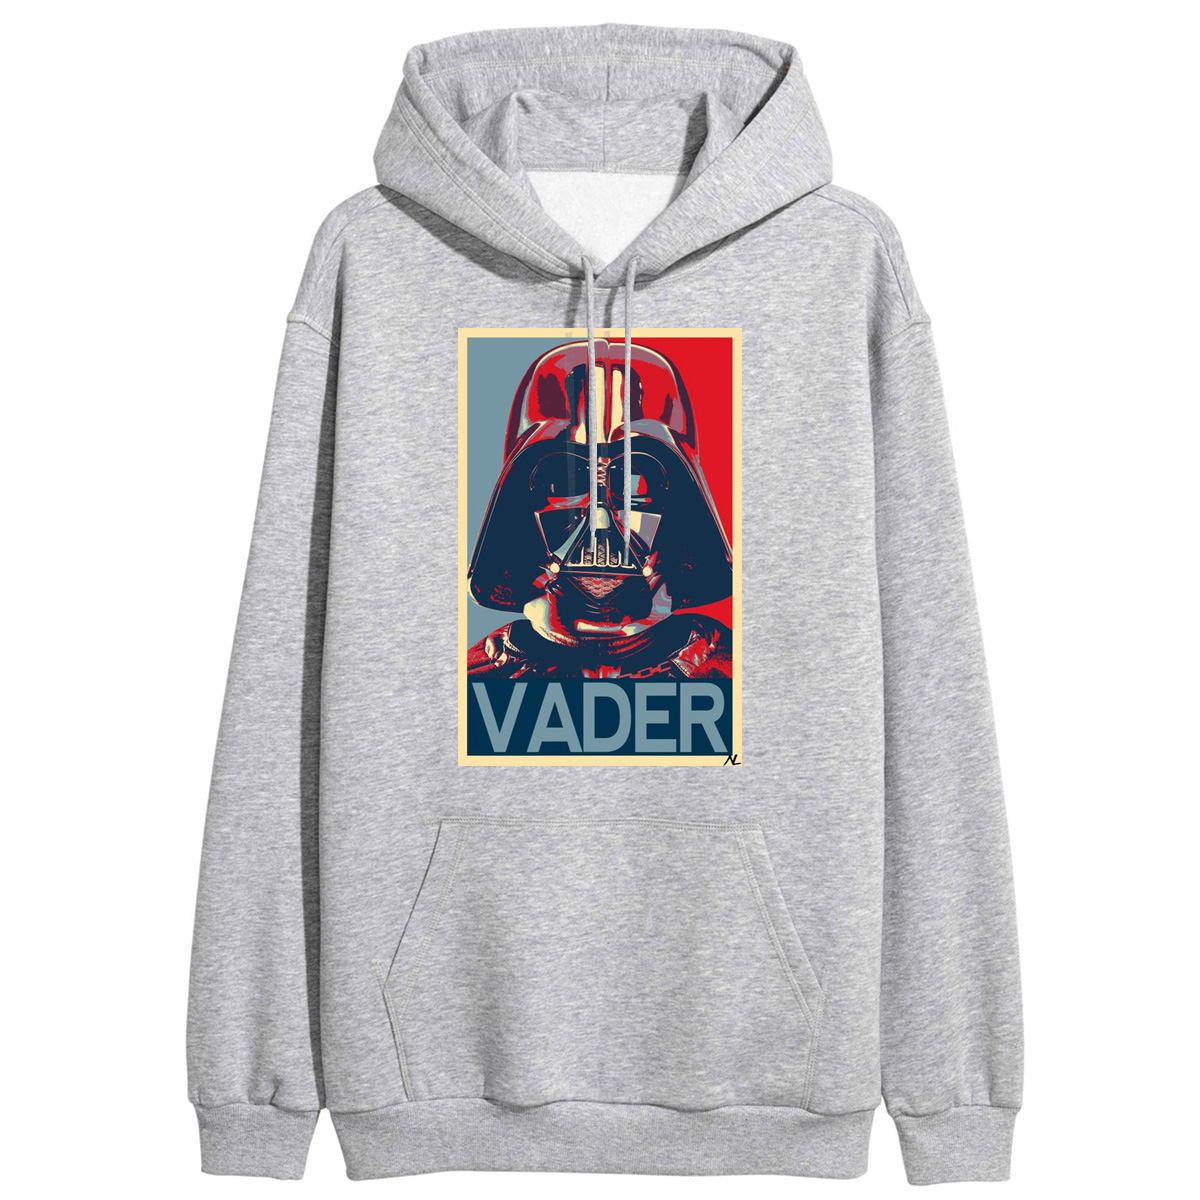 Black White Hoodies Sweatshirts Women Winter Fleece Star Wars Vader Fashion Streetwear Pullover Female Loose Tracksuit Sportwear